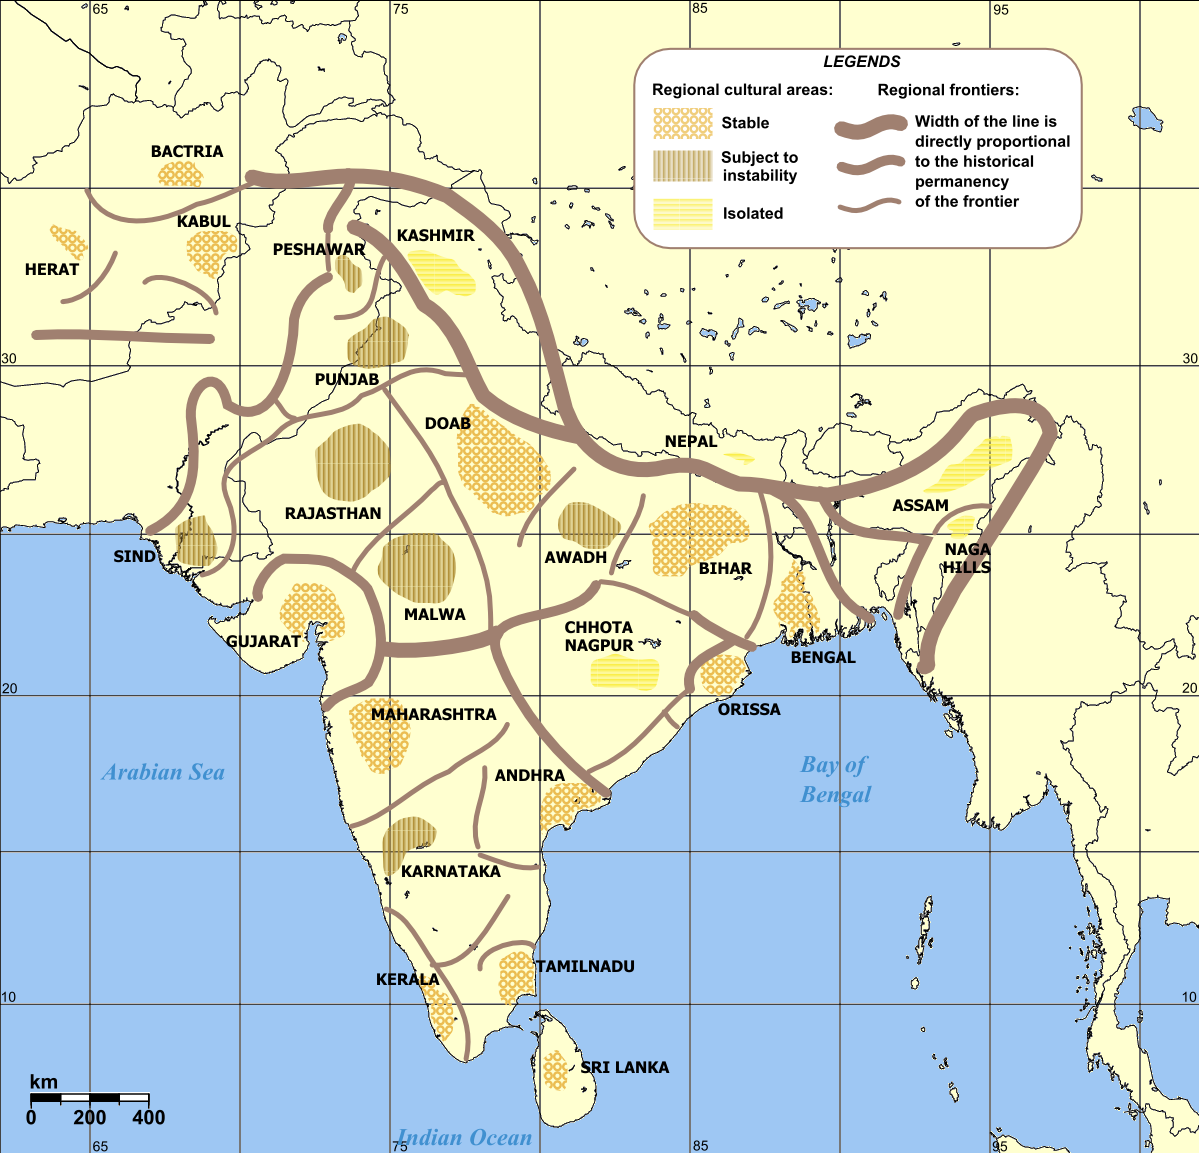 Filecultural regional areas of indiag wikimedia commons filecultural regional areas of indiag gumiabroncs Gallery